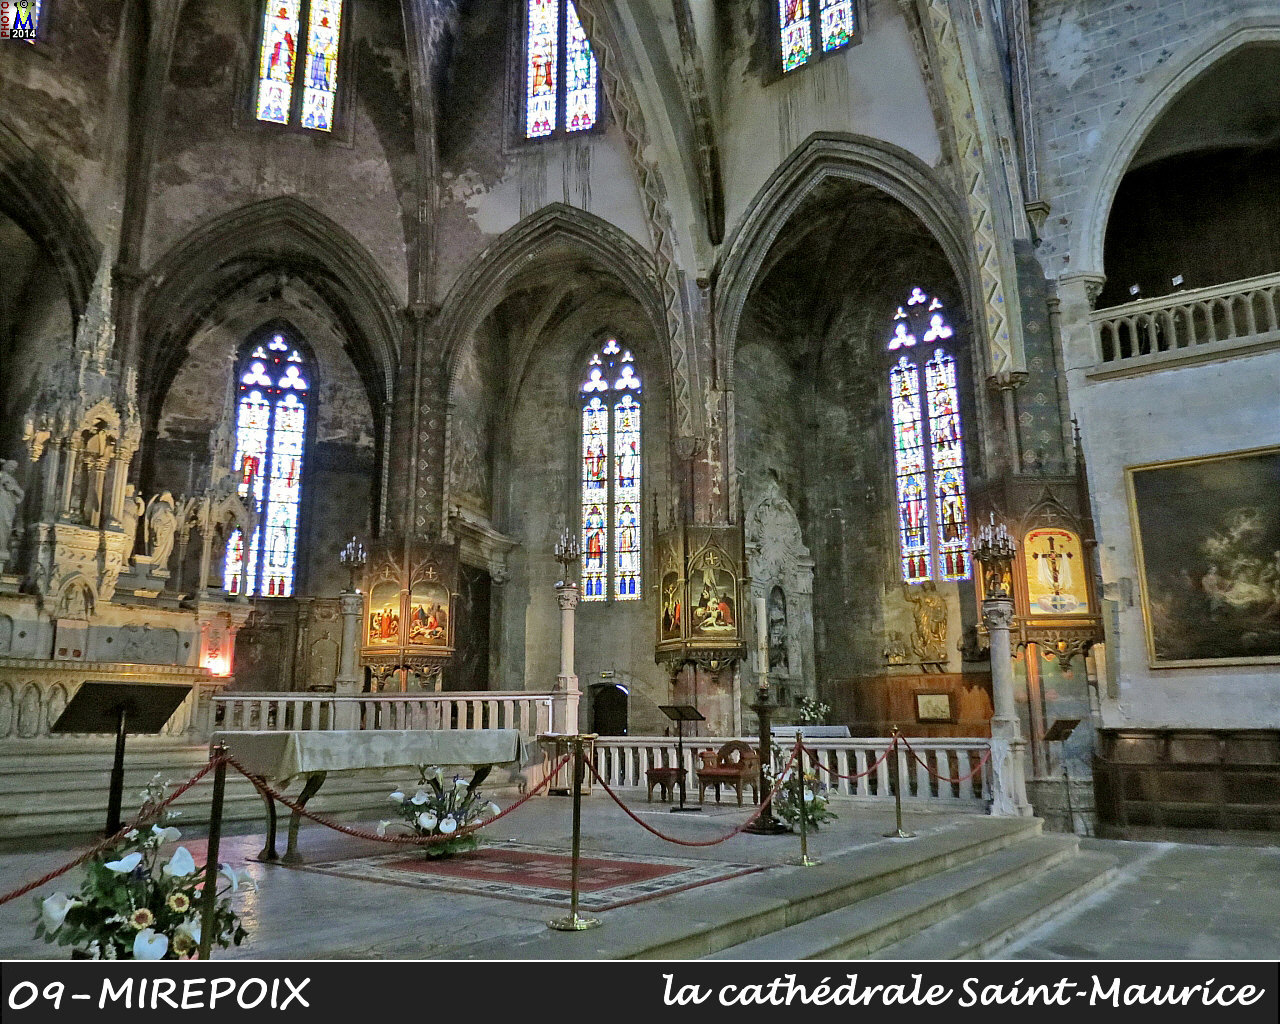 09MIREPOIX_cathedrale_218.jpg